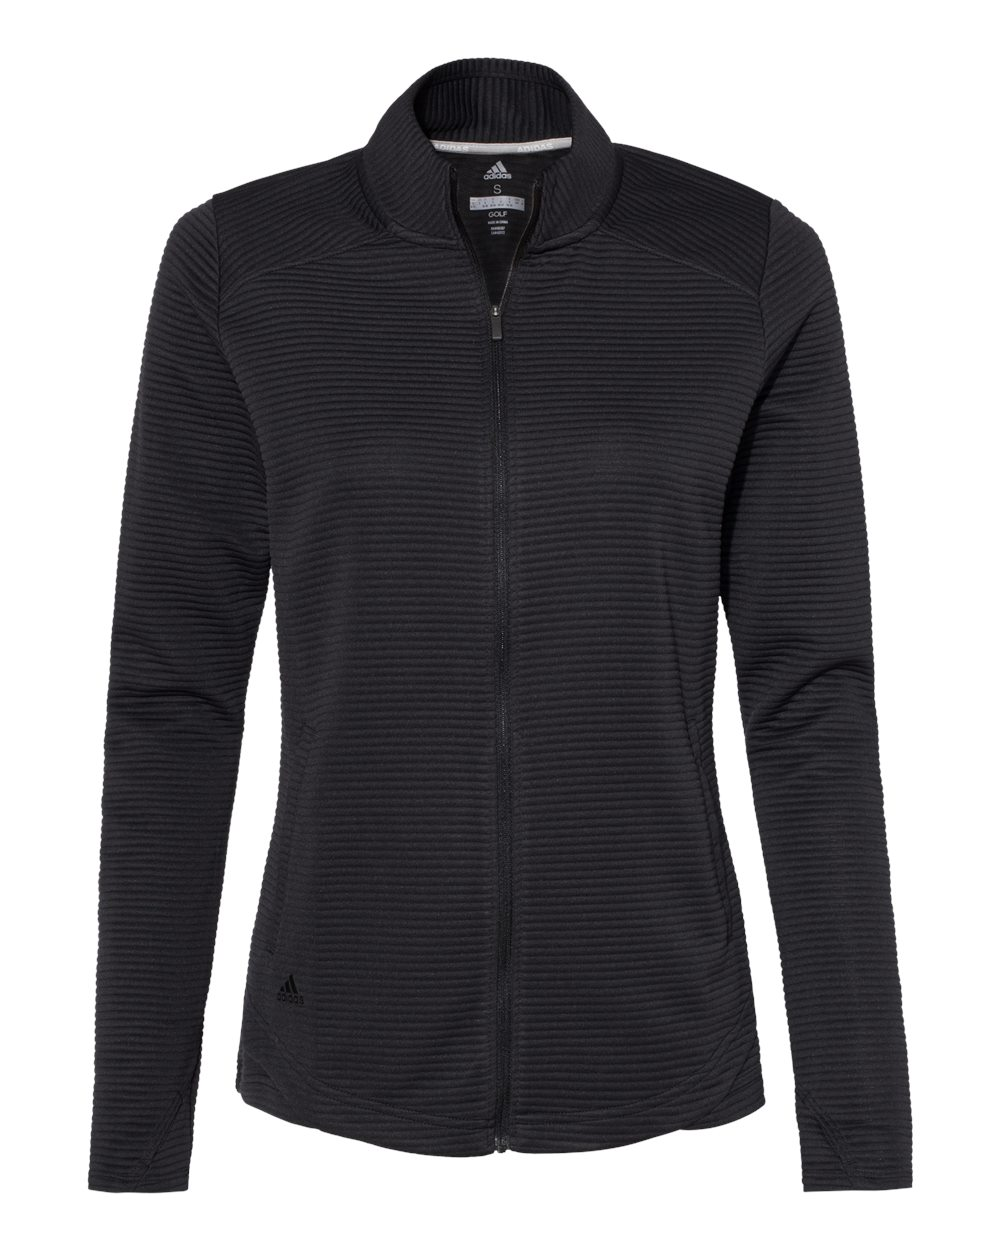 Adidas A416 - Women's Textured Full-Zip Jacket